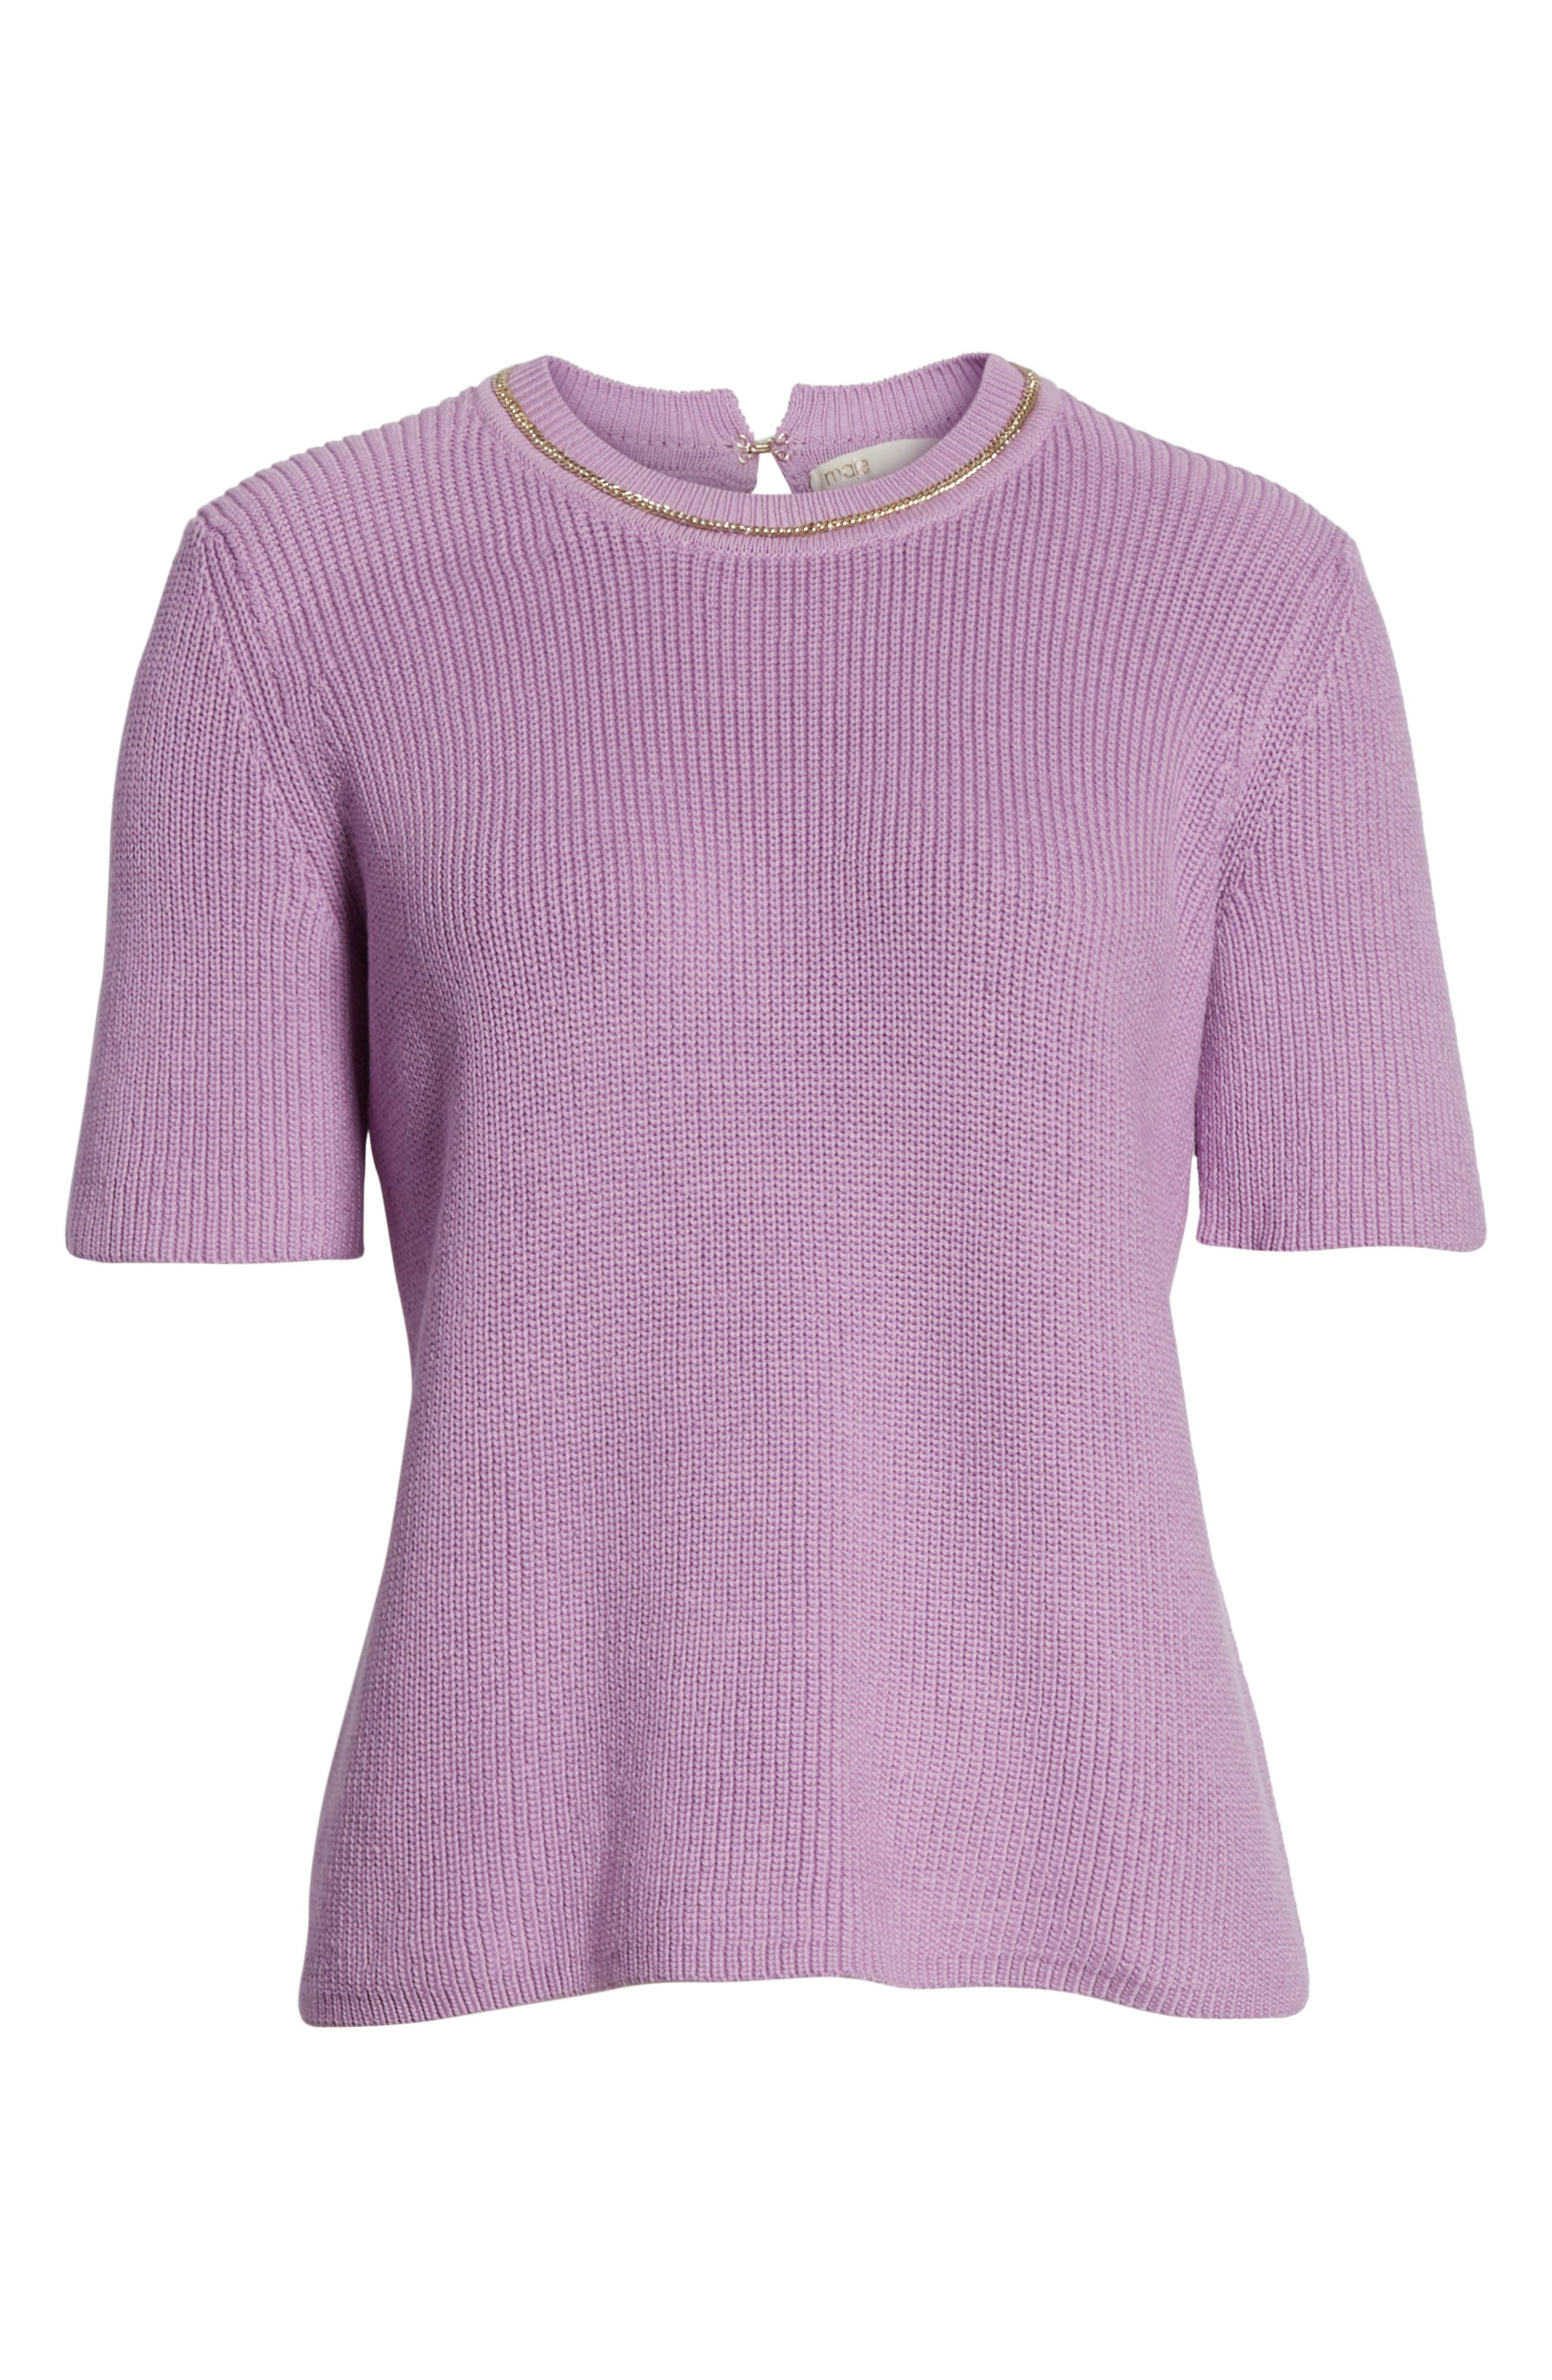 Magrite Sweater,                             Alternate thumbnail 6, color,                             Lilas